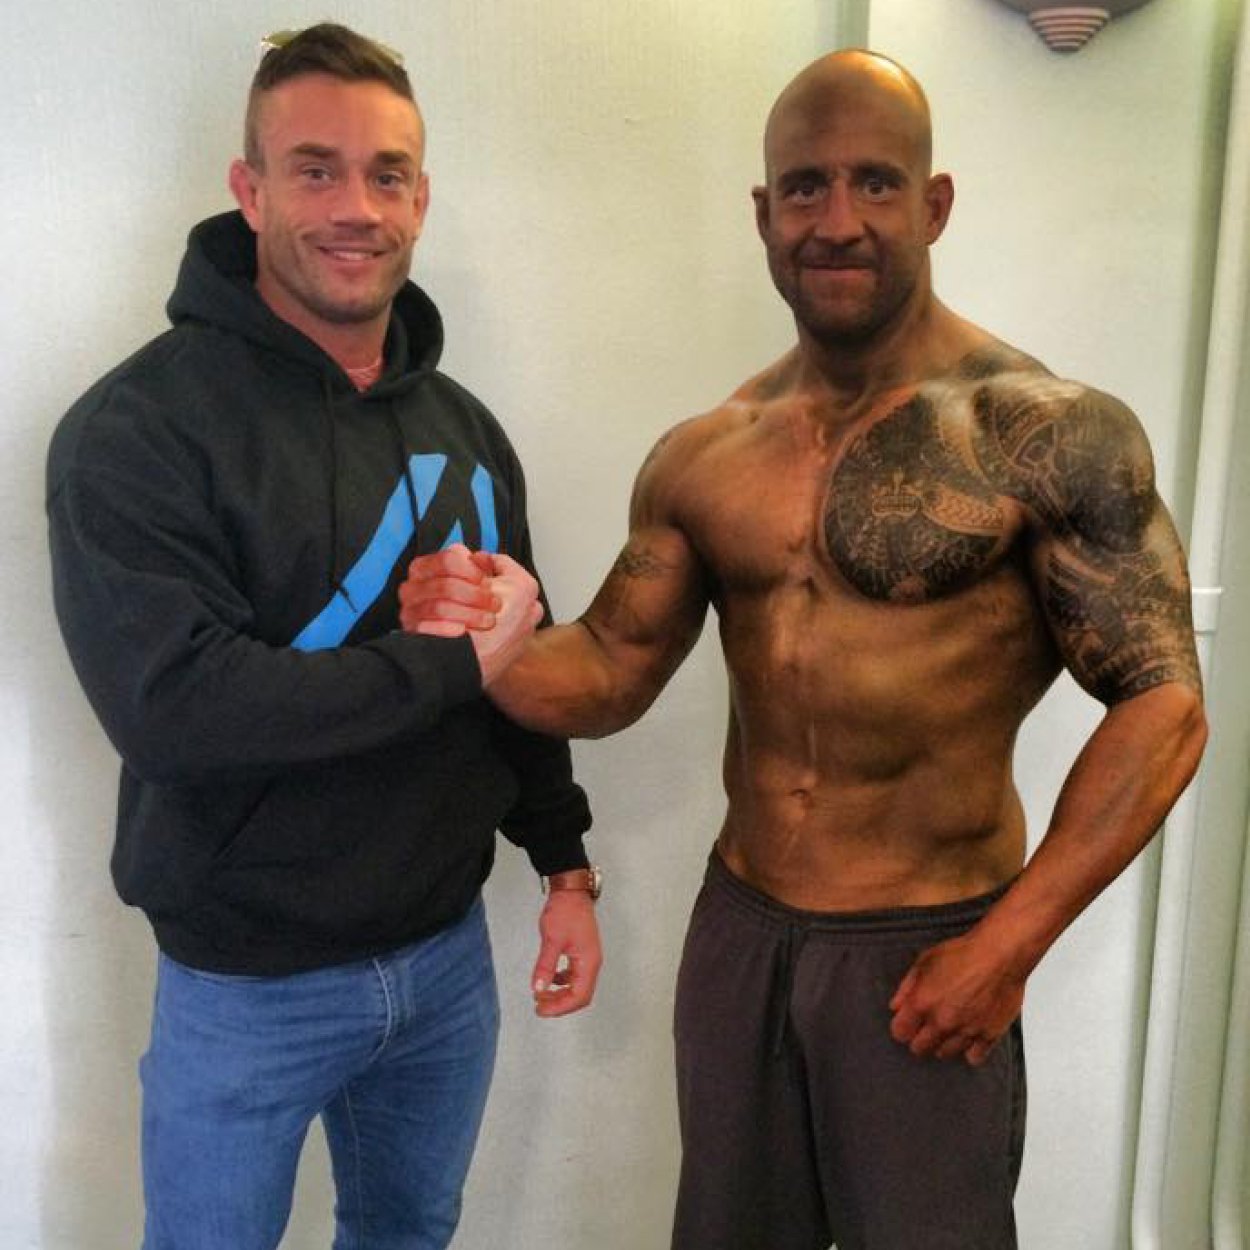 """BROOK DAVIES   """"When I decided to make the transition from Rugby to Bodybuilding all I wanted was perfection and to be the absolute best I can be. I chose to work with Adam because his knowledge and passion shines through in everything that he does. He not only looks after my training and nutrition but he shares the journey with me, constantly keeps in touch asking how I am, progress updates, weekly training sessions and has become a life long friend. Adam practices what he preaches, he's been there and done it all."""""""